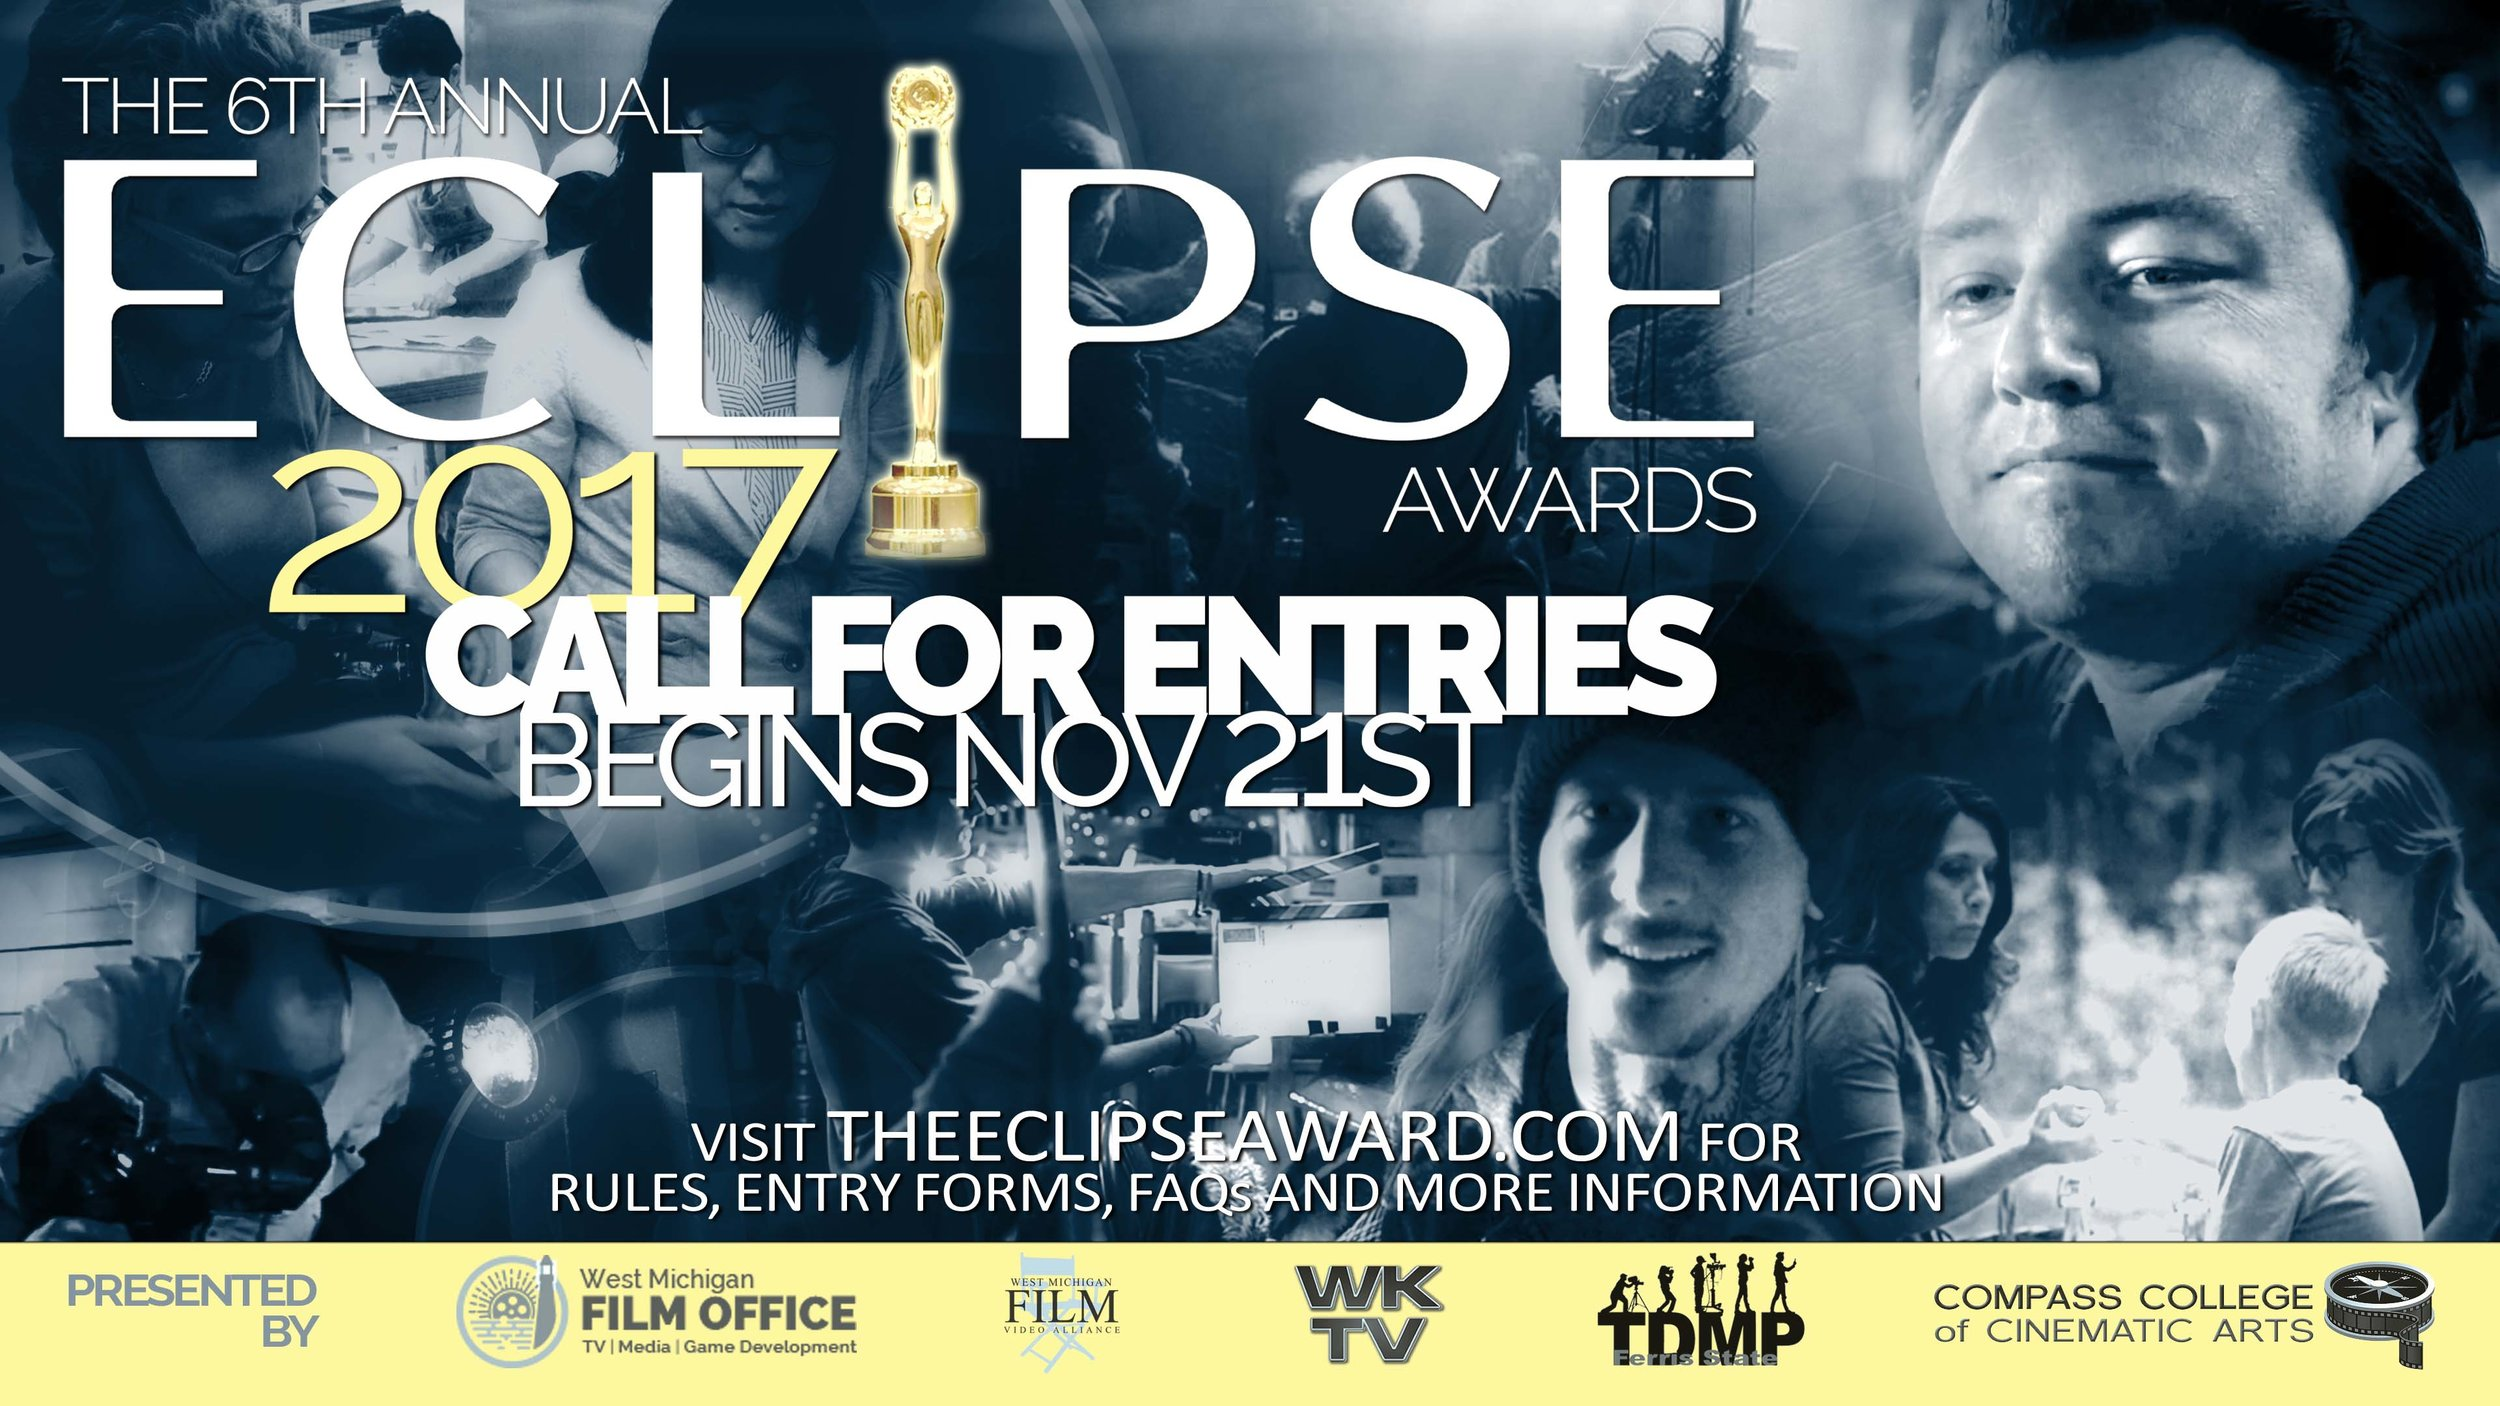 Wyoming/Kentwood Television Studios is donating a free entry into the  2017 Eclipse Awards for the winning Challenge film. The Eclipse Award is given for story telling and production excellence and seeks to elevate content creators throughout West Michigan. Entries for 2017 are open. Submit your Michigan-made film now.